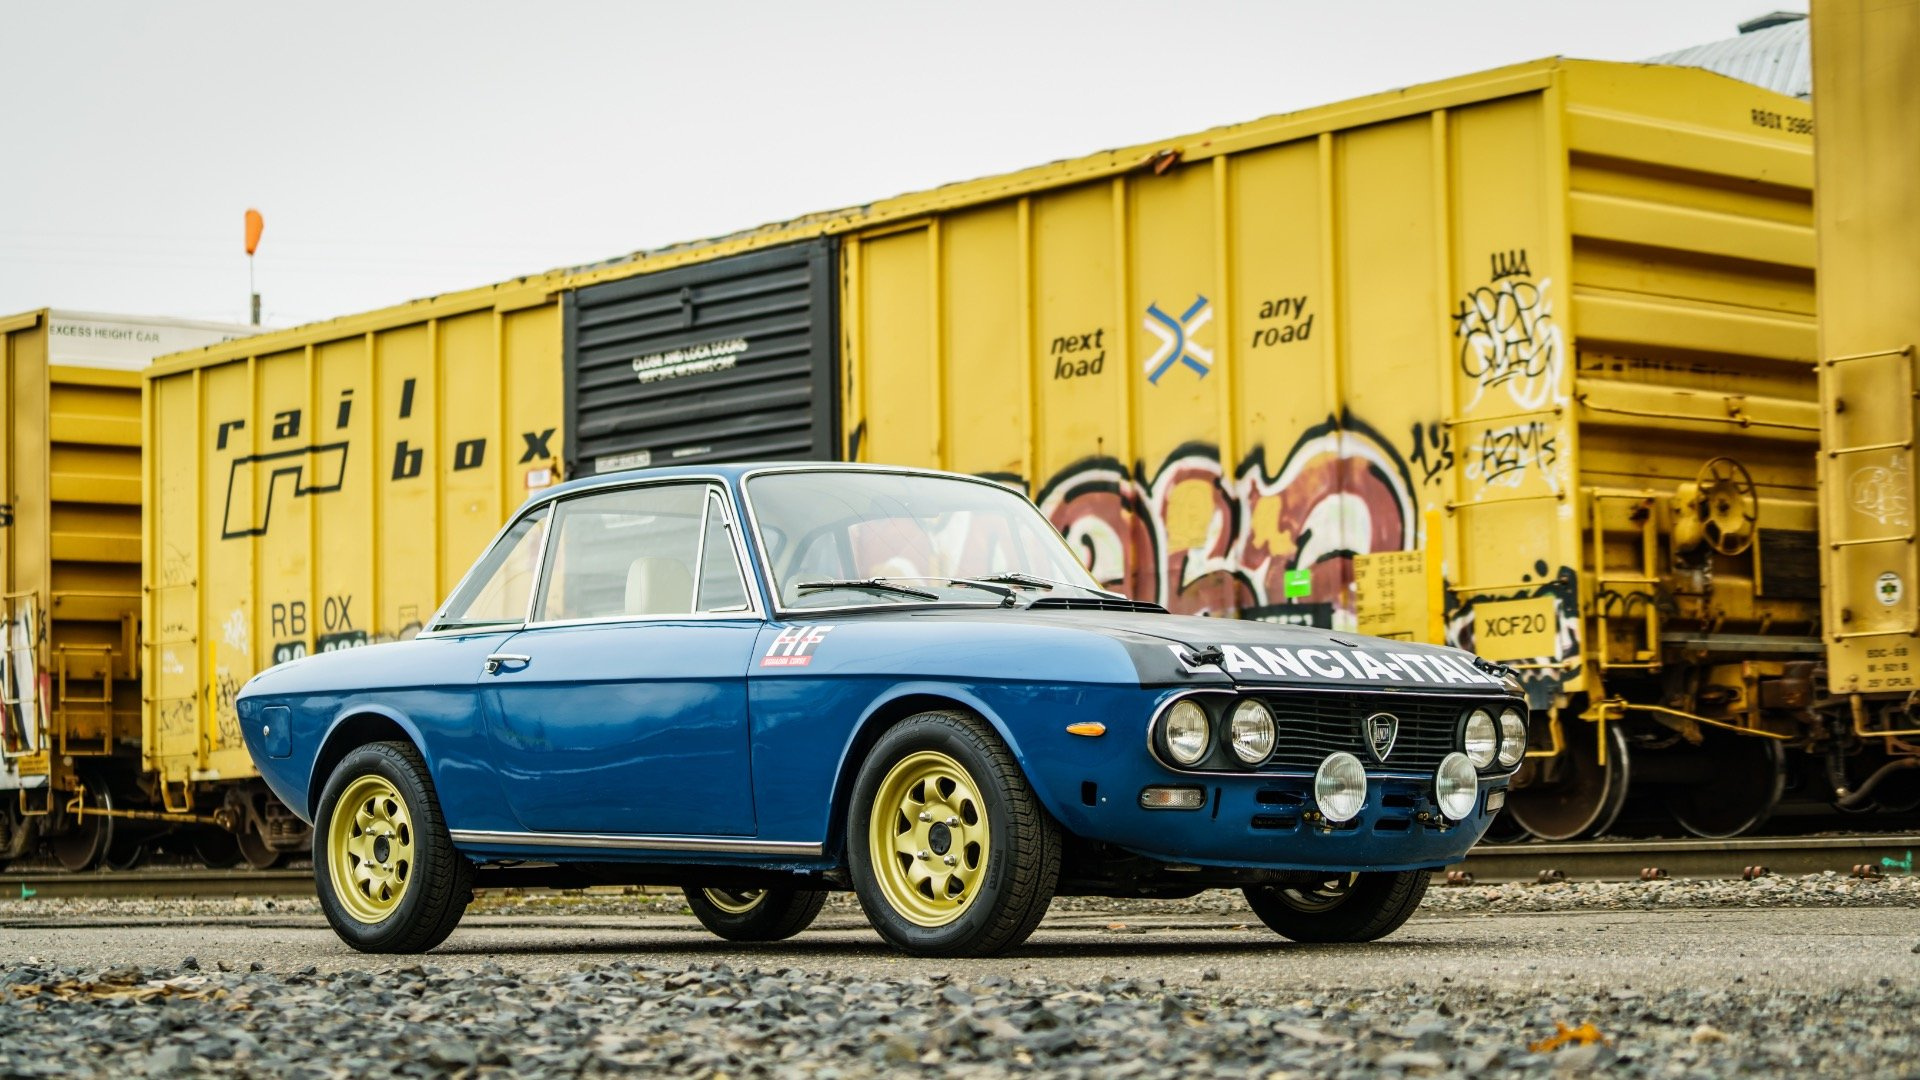 1974 Lancia Fulvia 1.3S = Blue Driver 5 speed 9k miles $23k For Sale (picture 2 of 6)